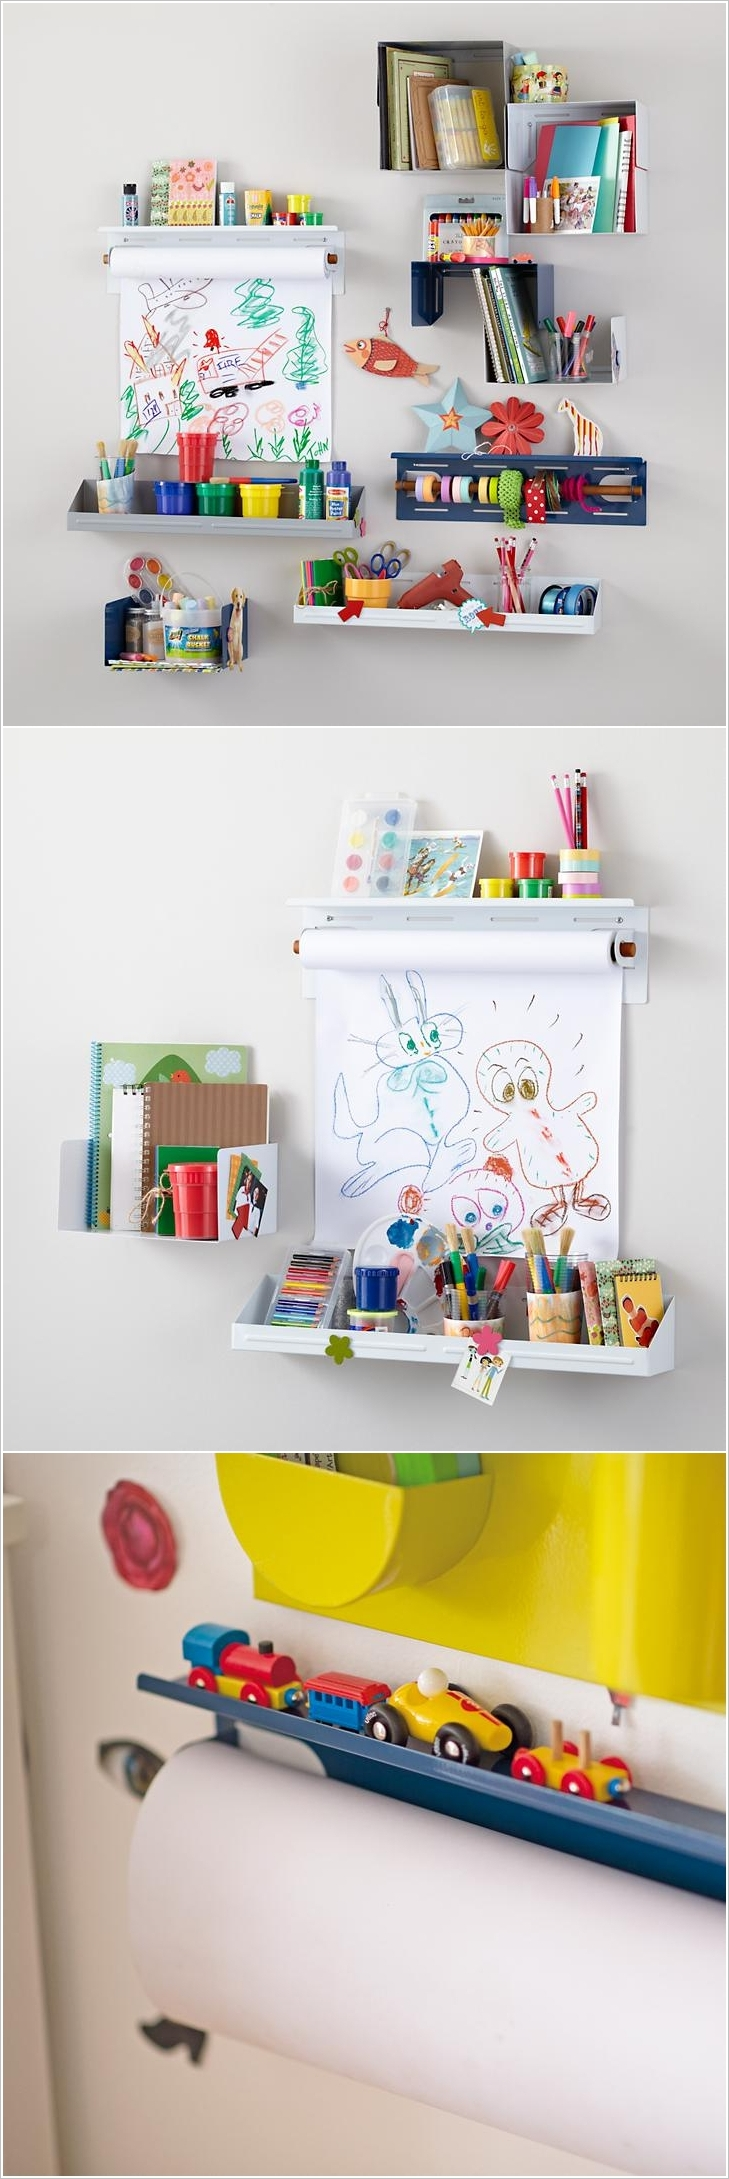 20 Clever Kids Playroom Organization Hacks and Ideas | Architecture ...